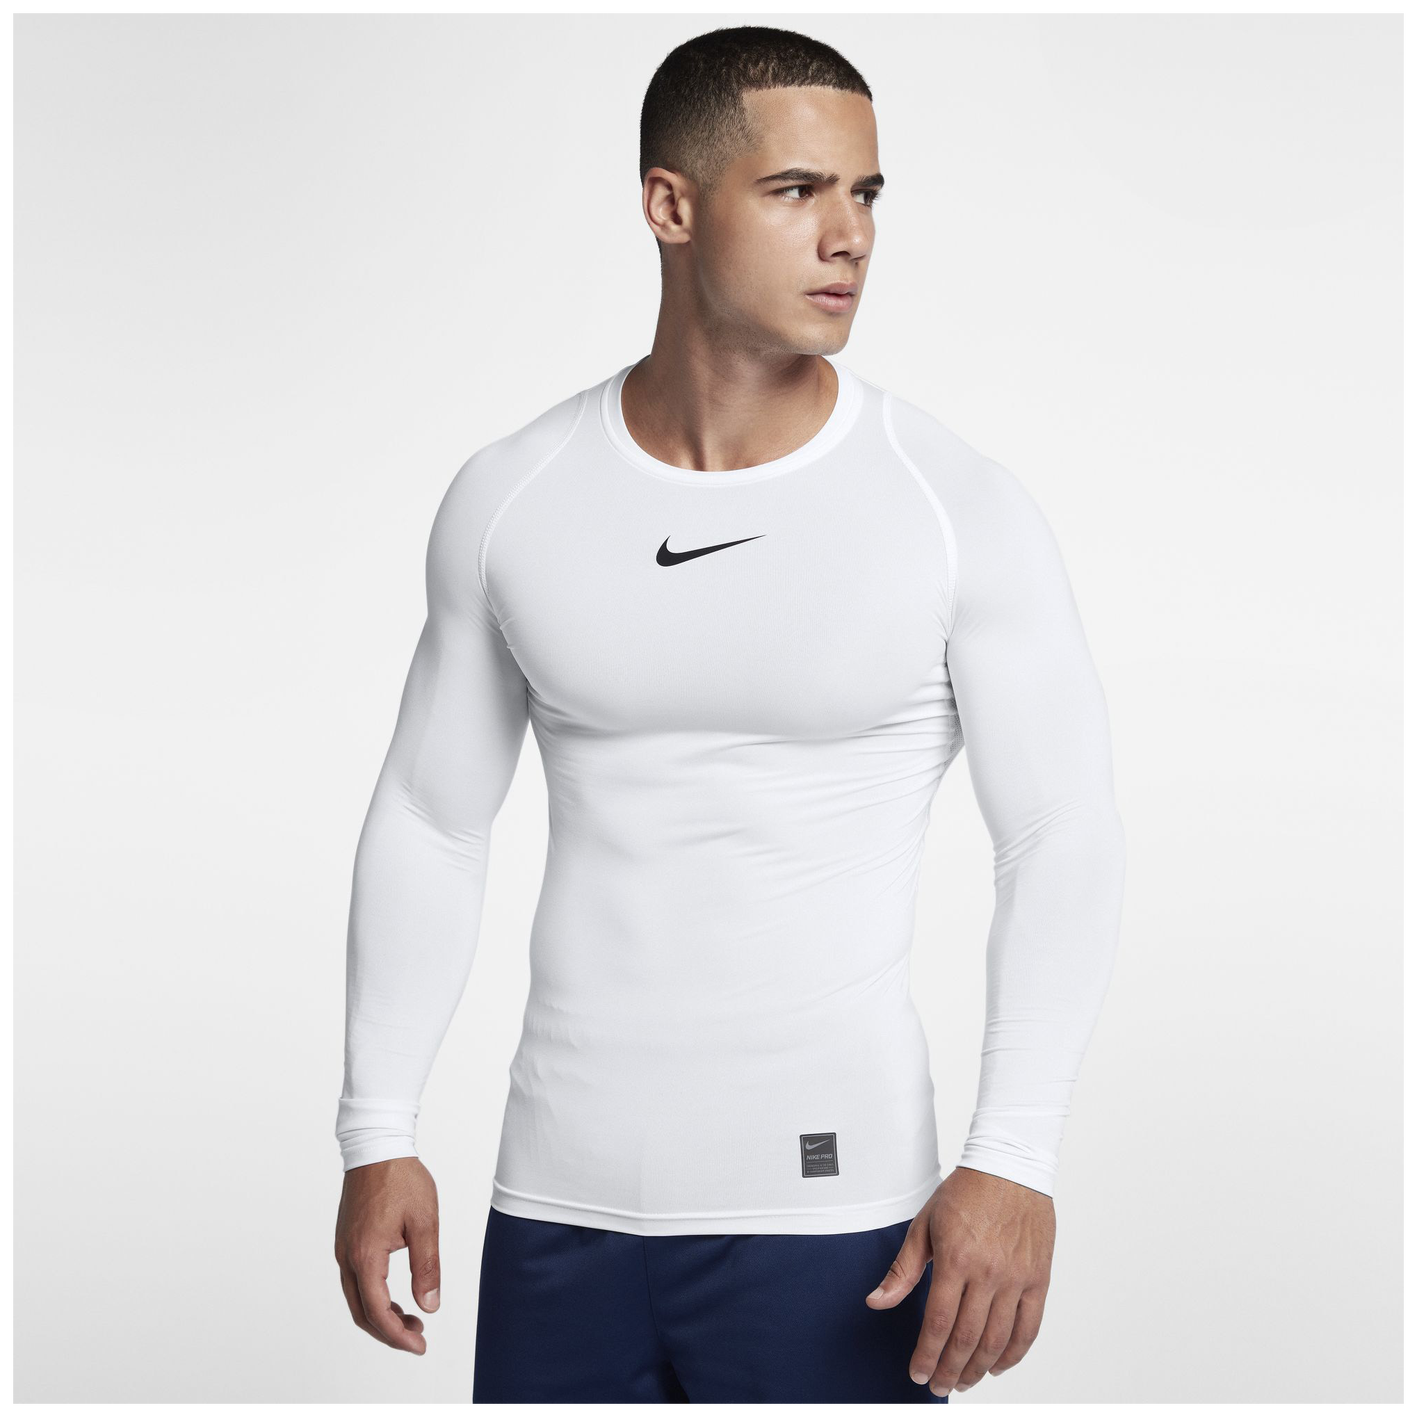 a0f3ad11 Nike Pro Compression Long Sleeve Top - Men's - Training - Clothing ...